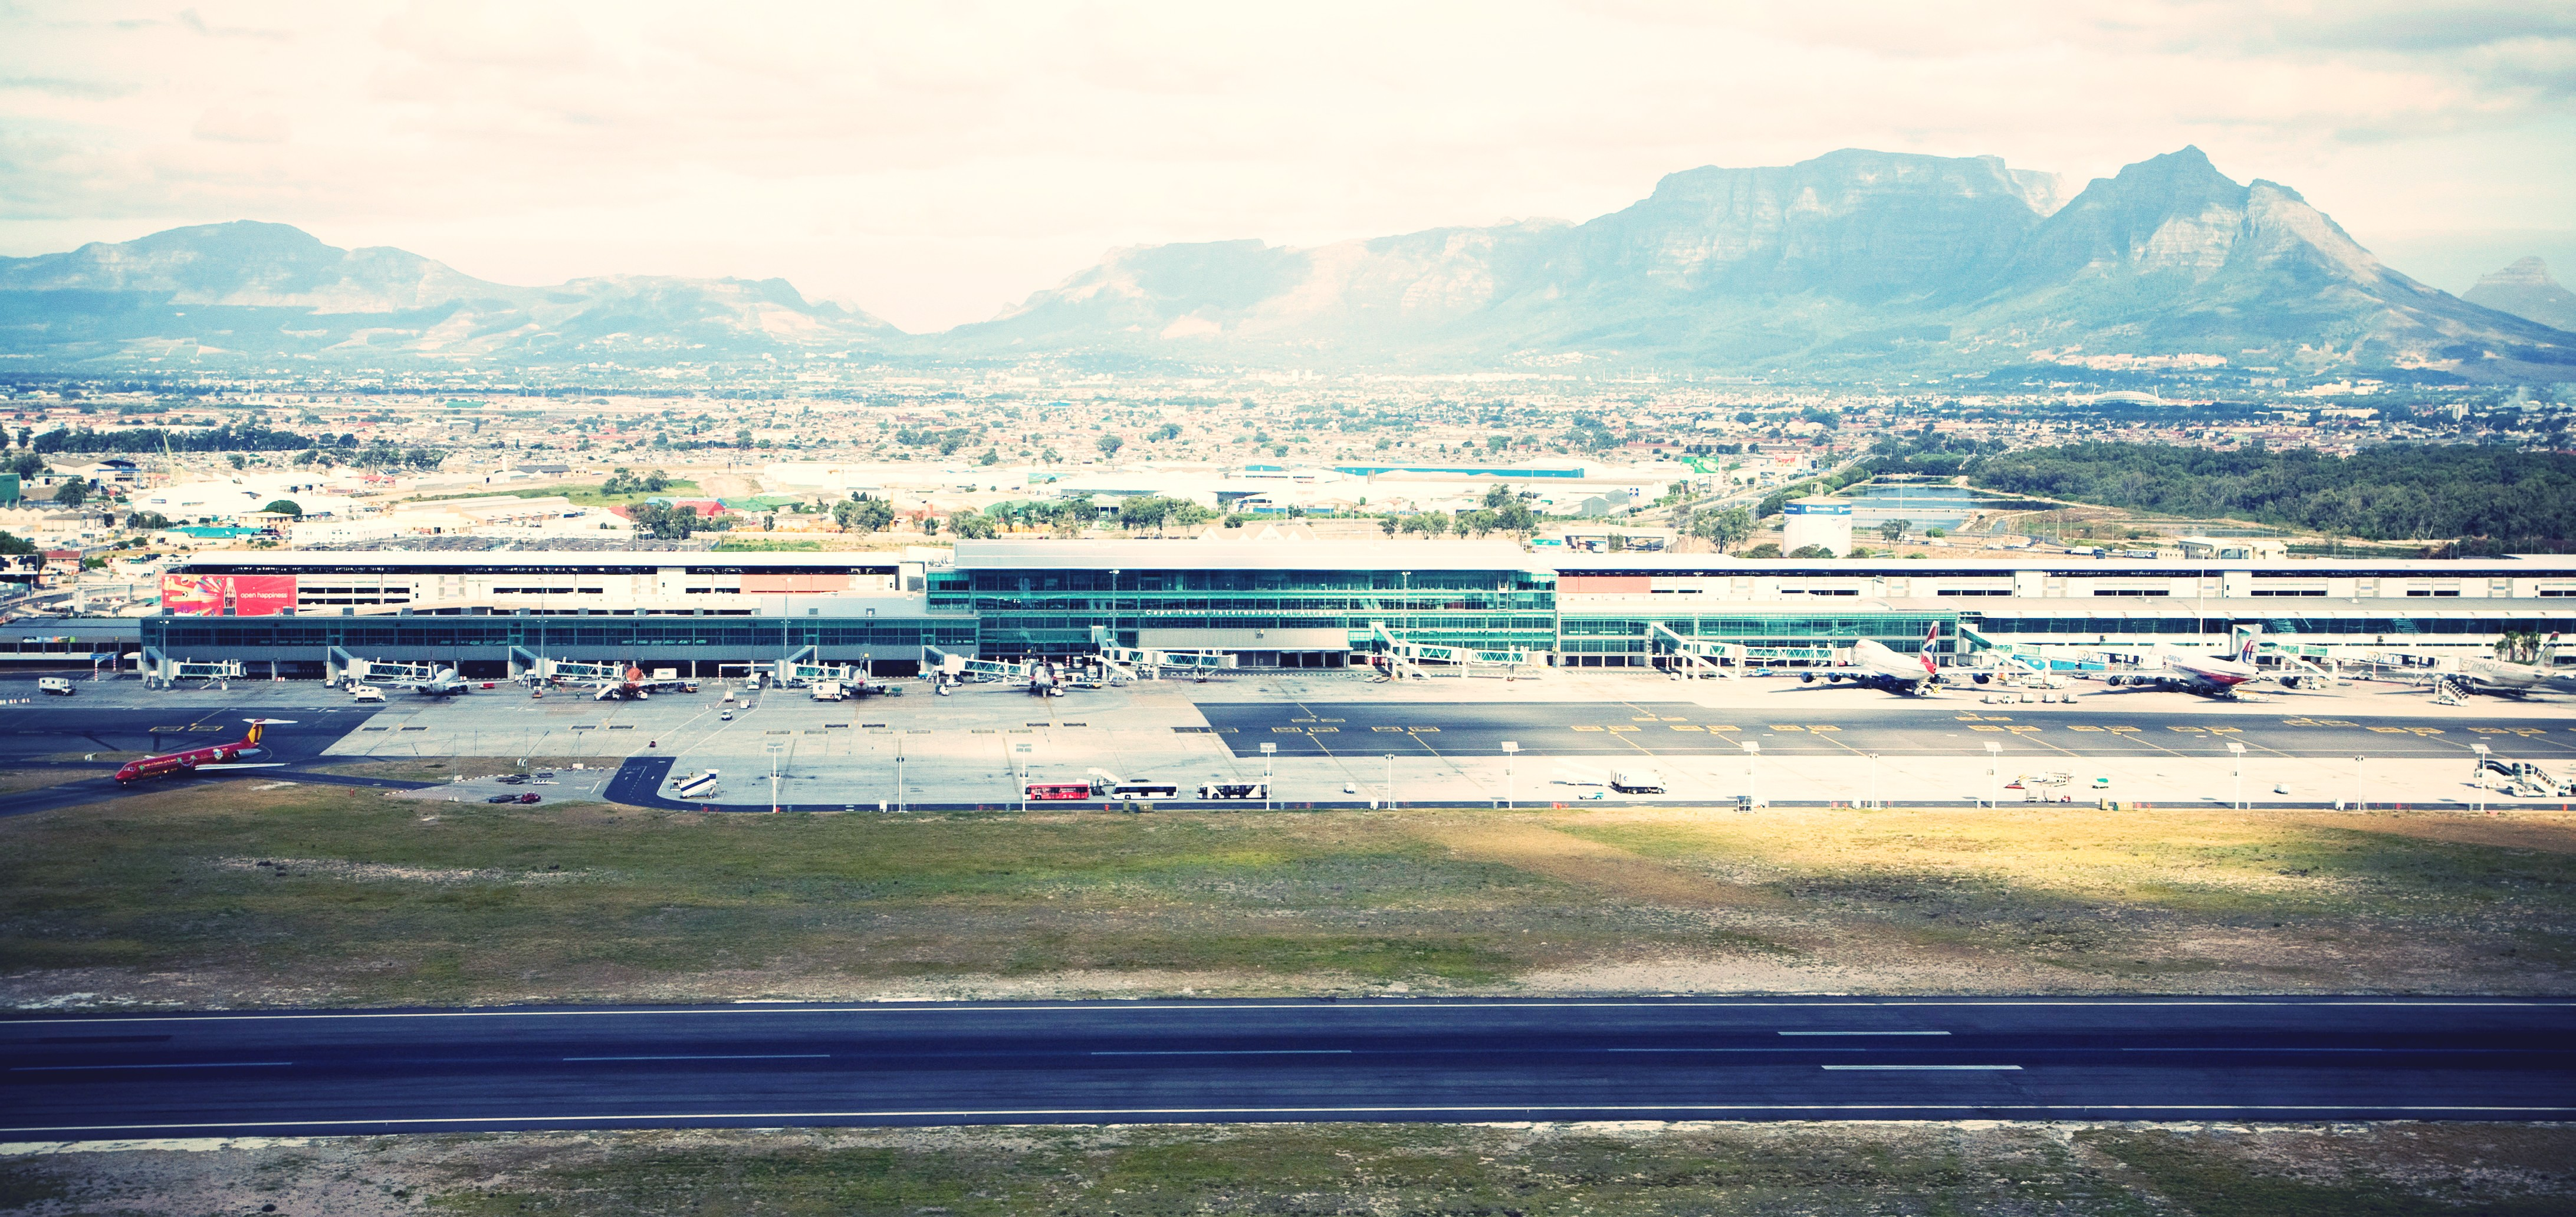 Cape Town Internation Airport Runway 2